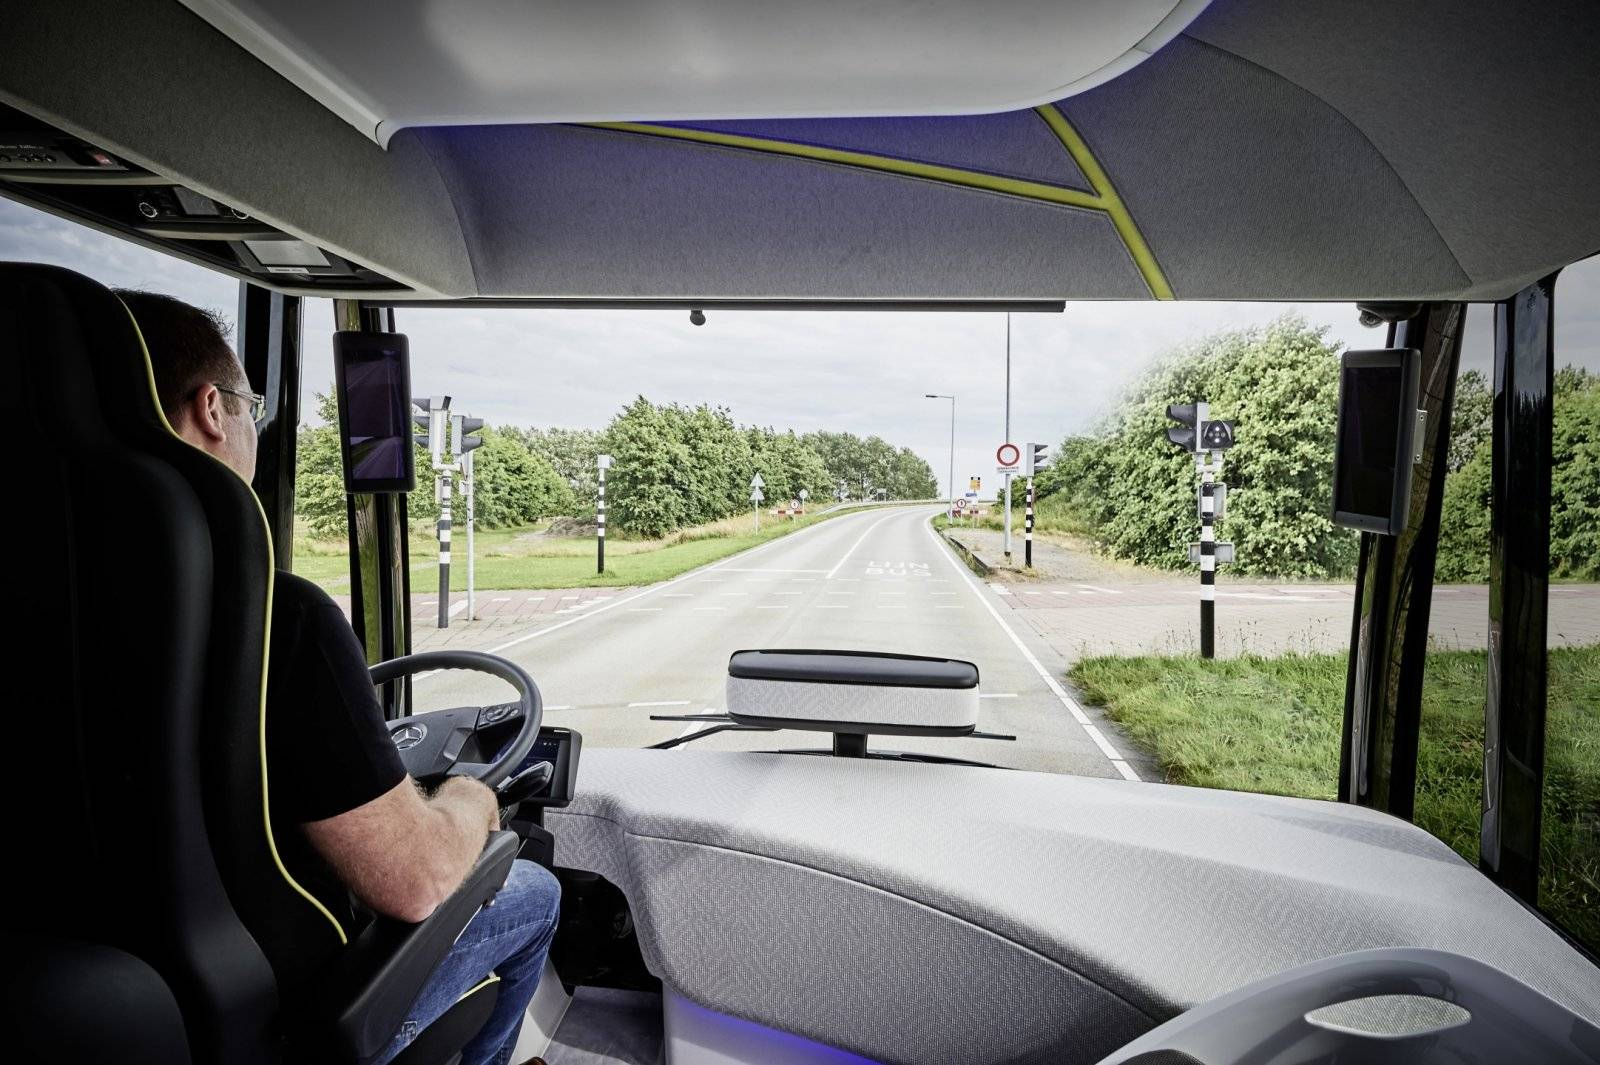 Mercedes Benz Presenteert De Bus Van 2025 Autonieuws